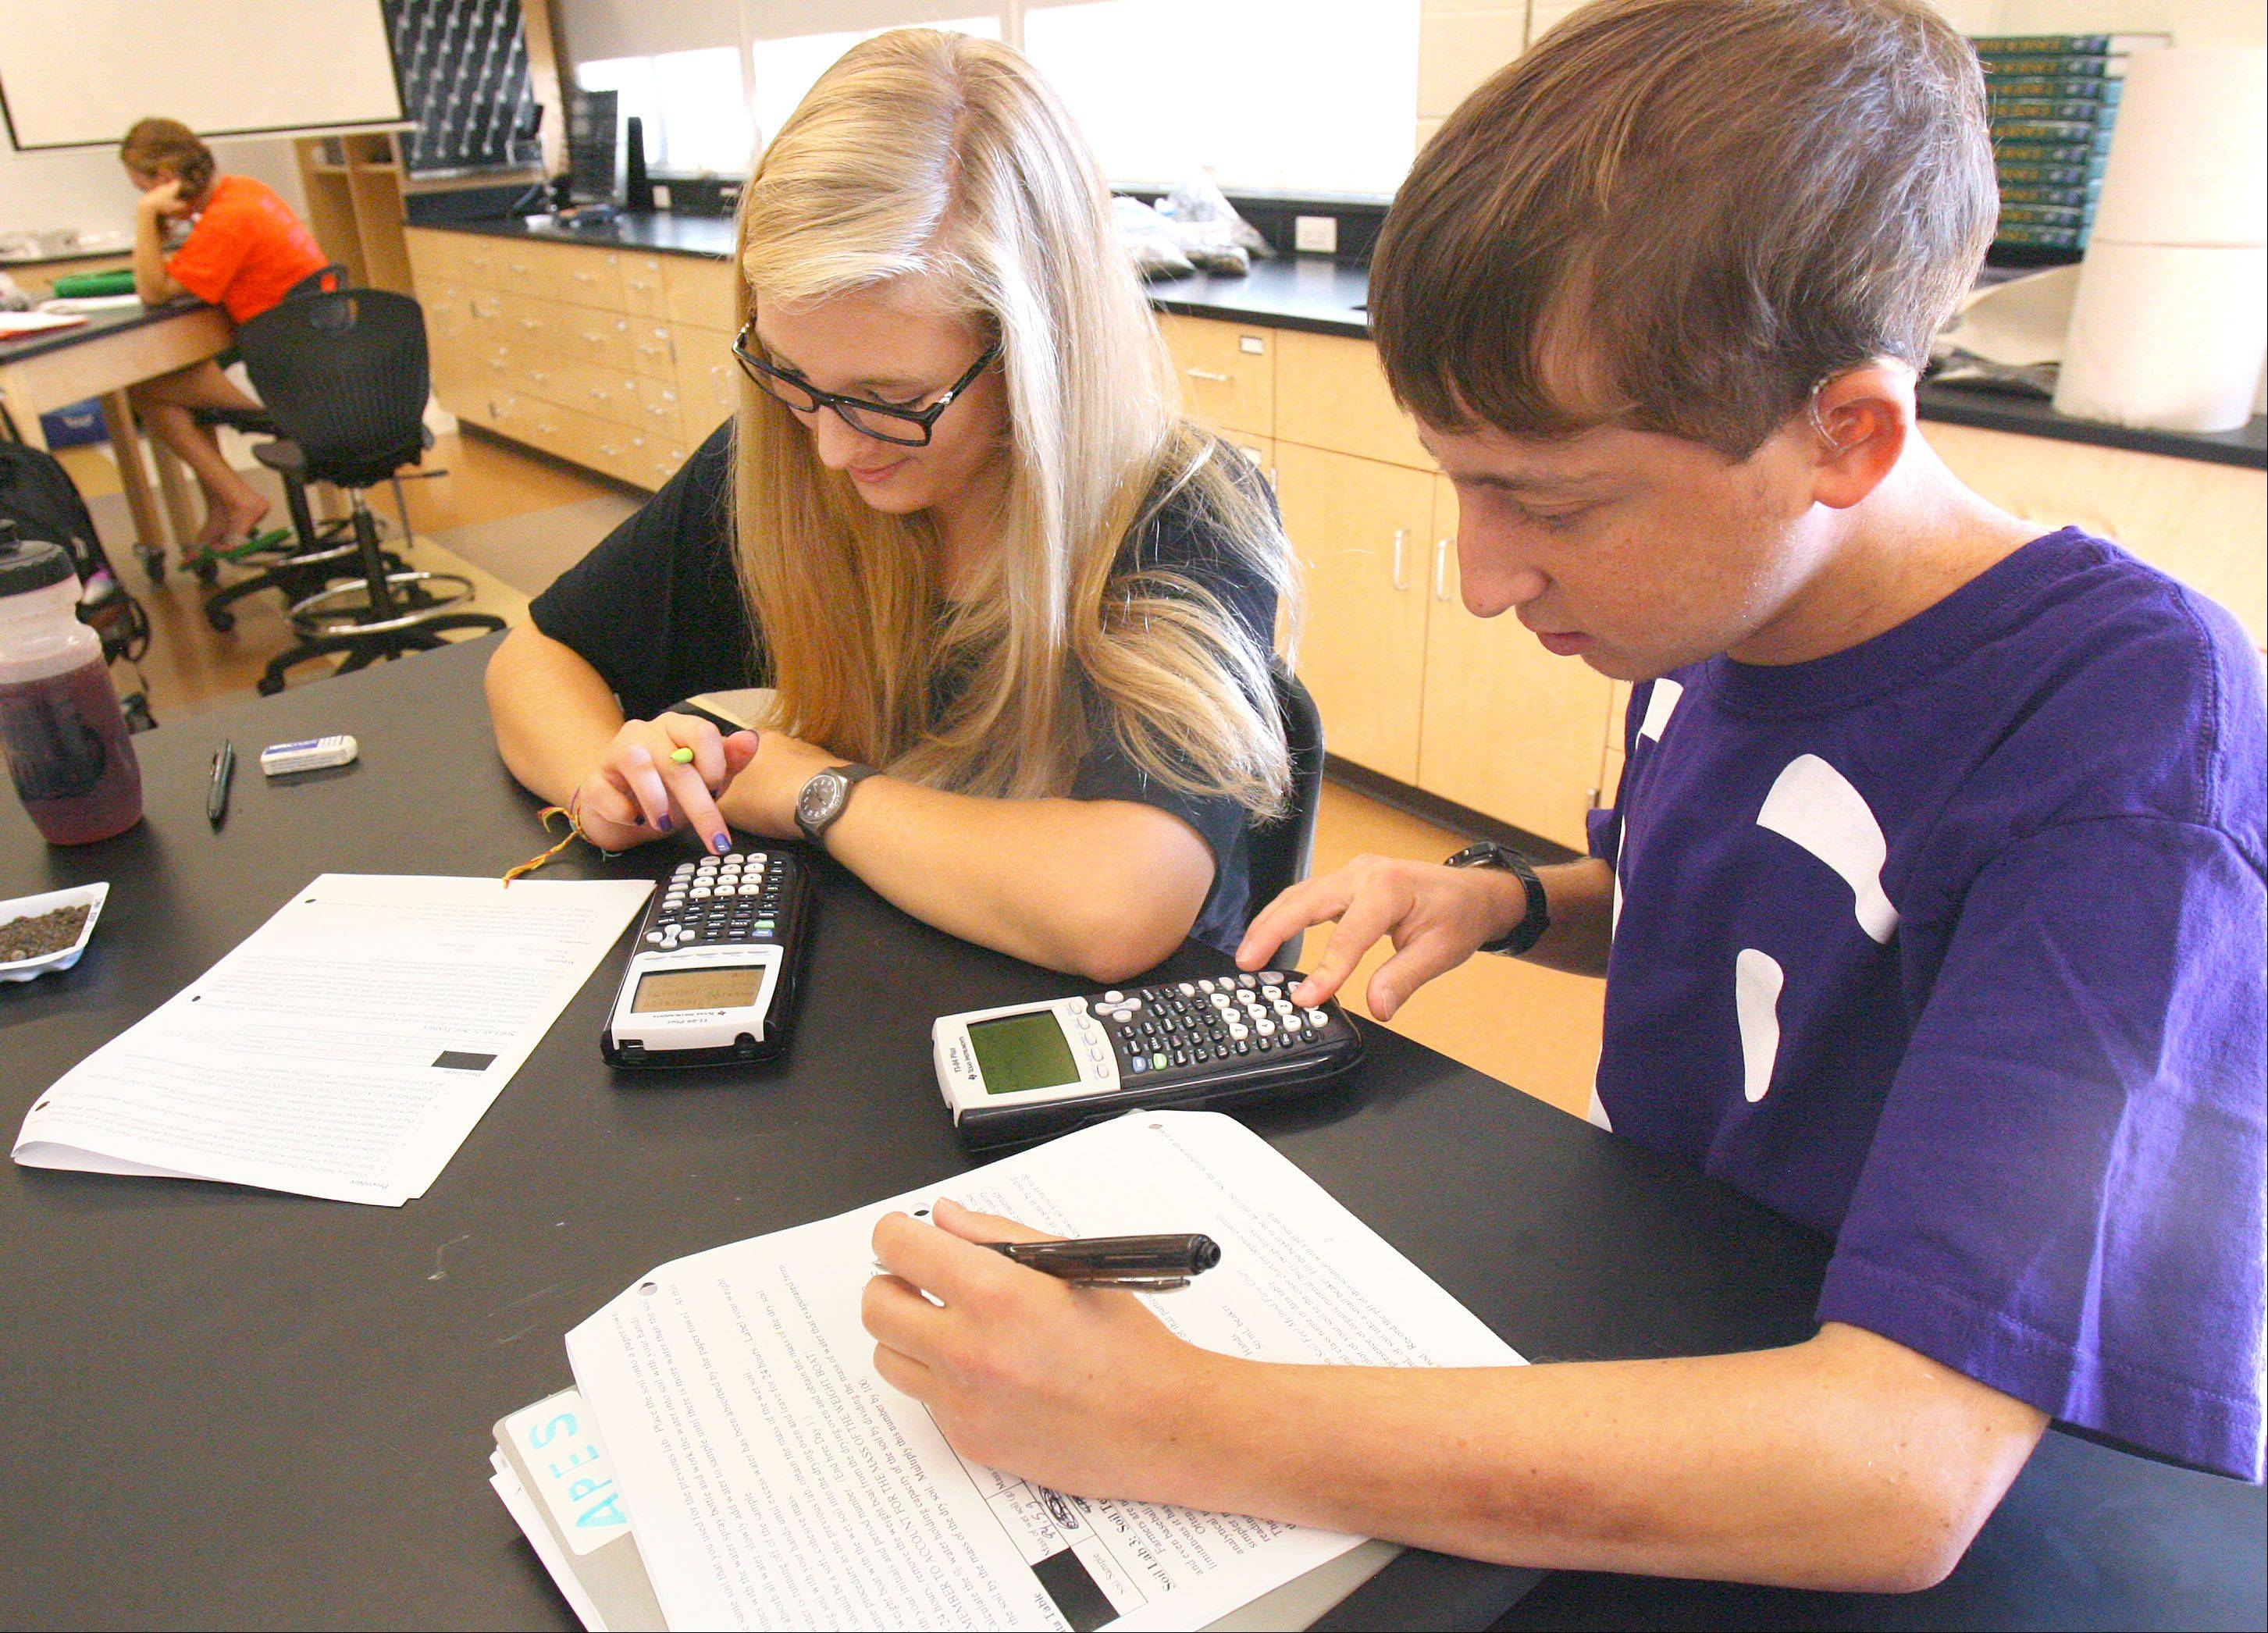 Katja Sandquist, 17, of Long Grove, left, and Daniel Sagerman, 17, of Buffalo Grove solve problems during an Advanced Placement environmental science class at Stevenson High School.